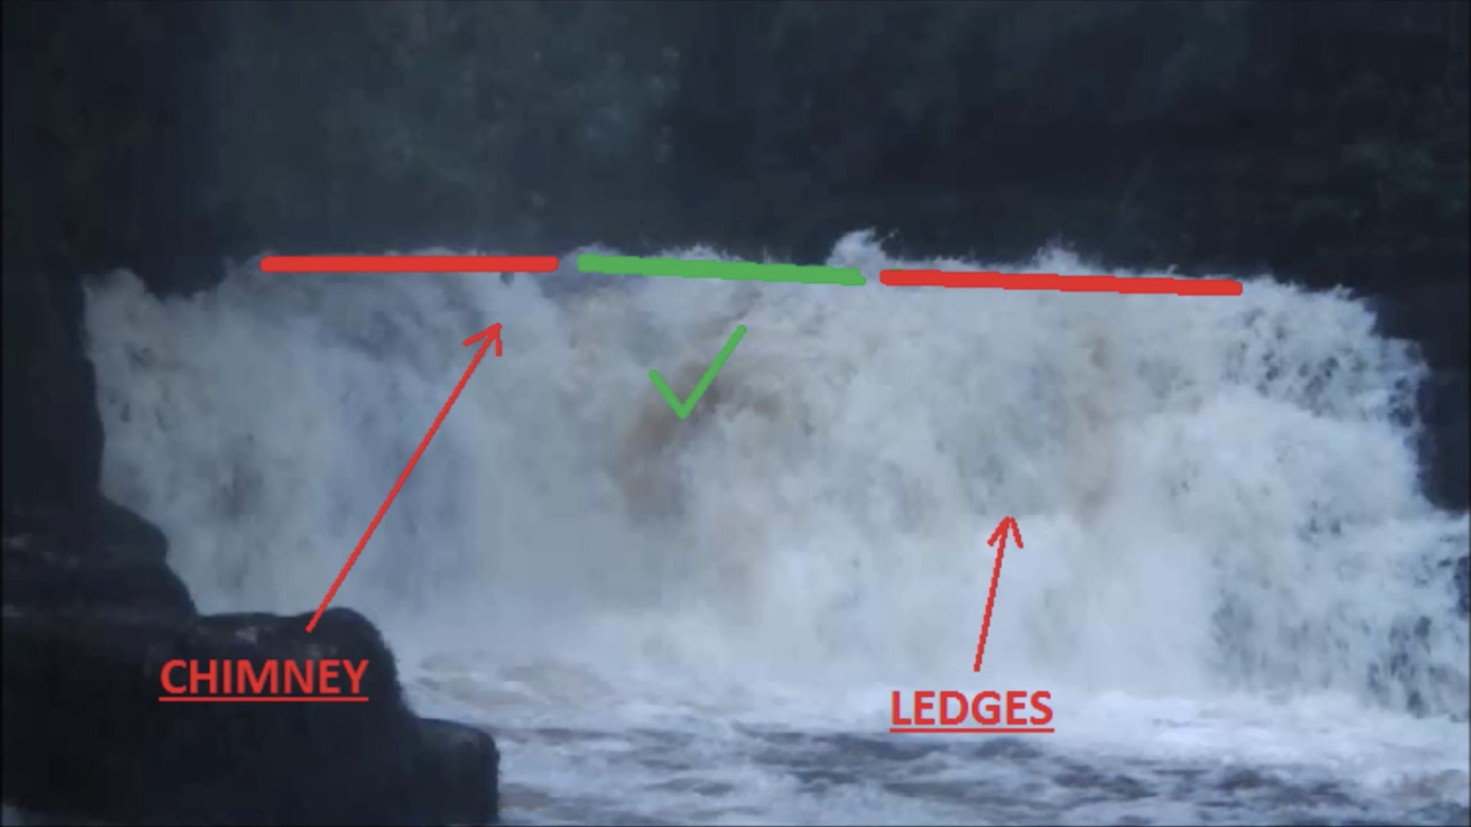 Clare Glens Big Eas / Ass Waterfall River Guide showing lines to take. Created by University of Limerick Kayak Club.